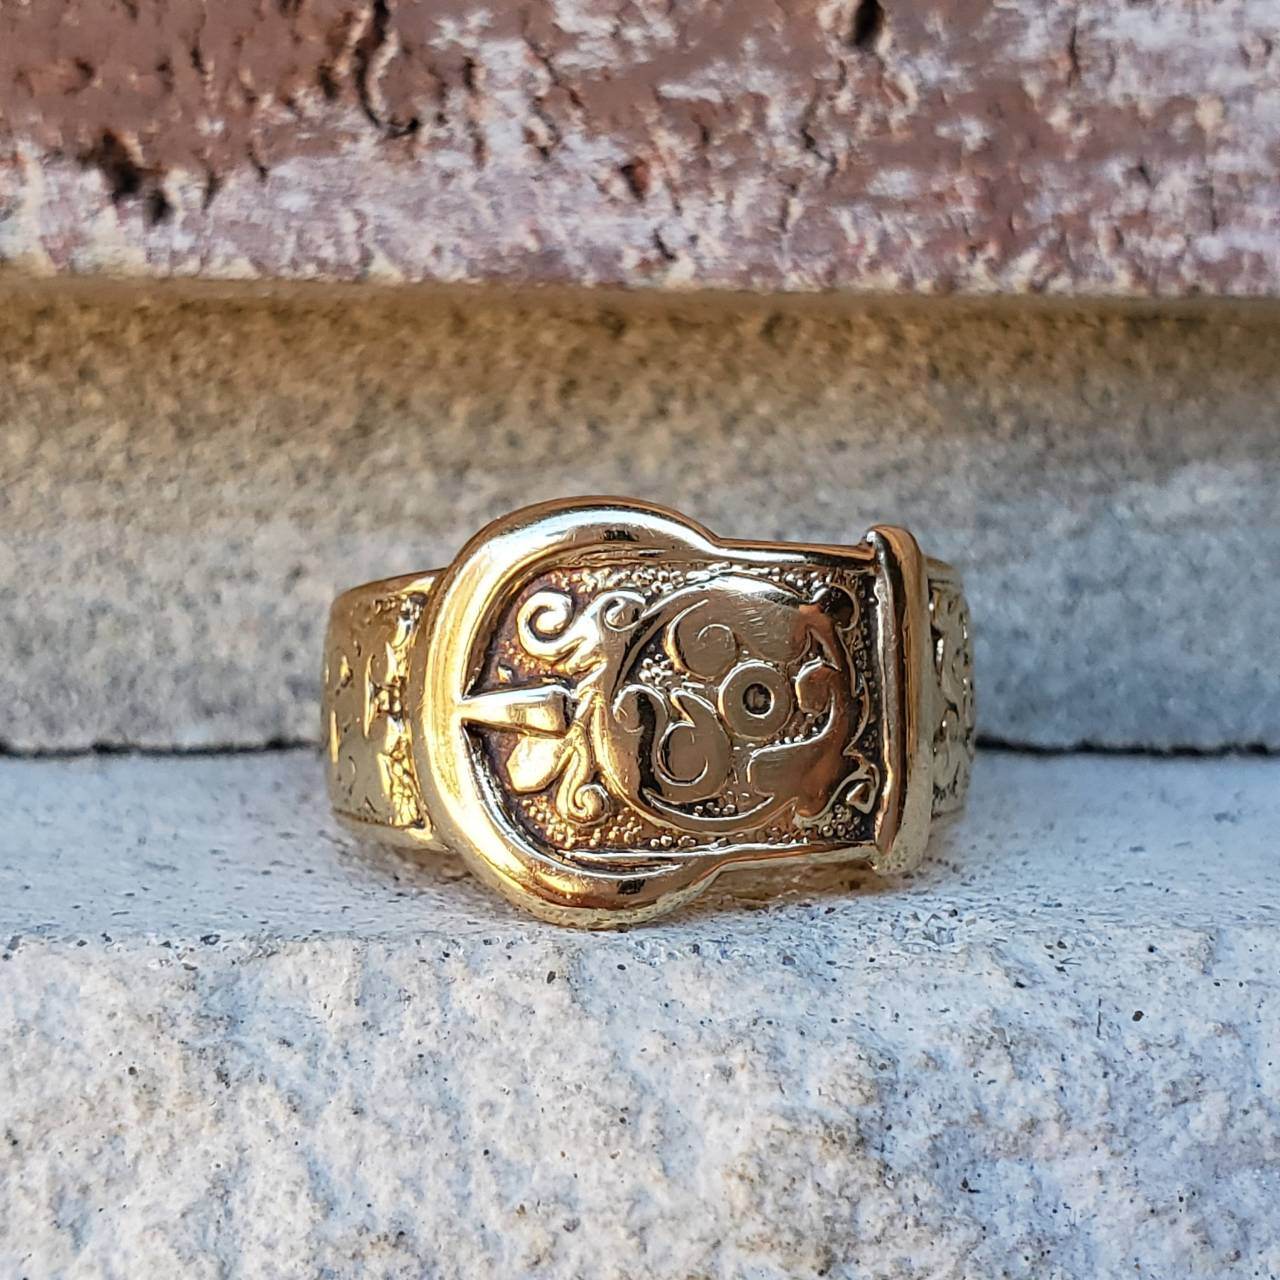 Vintage 9k Yellow Gold Buckle Ring #Rings#Jewelry#Buckle